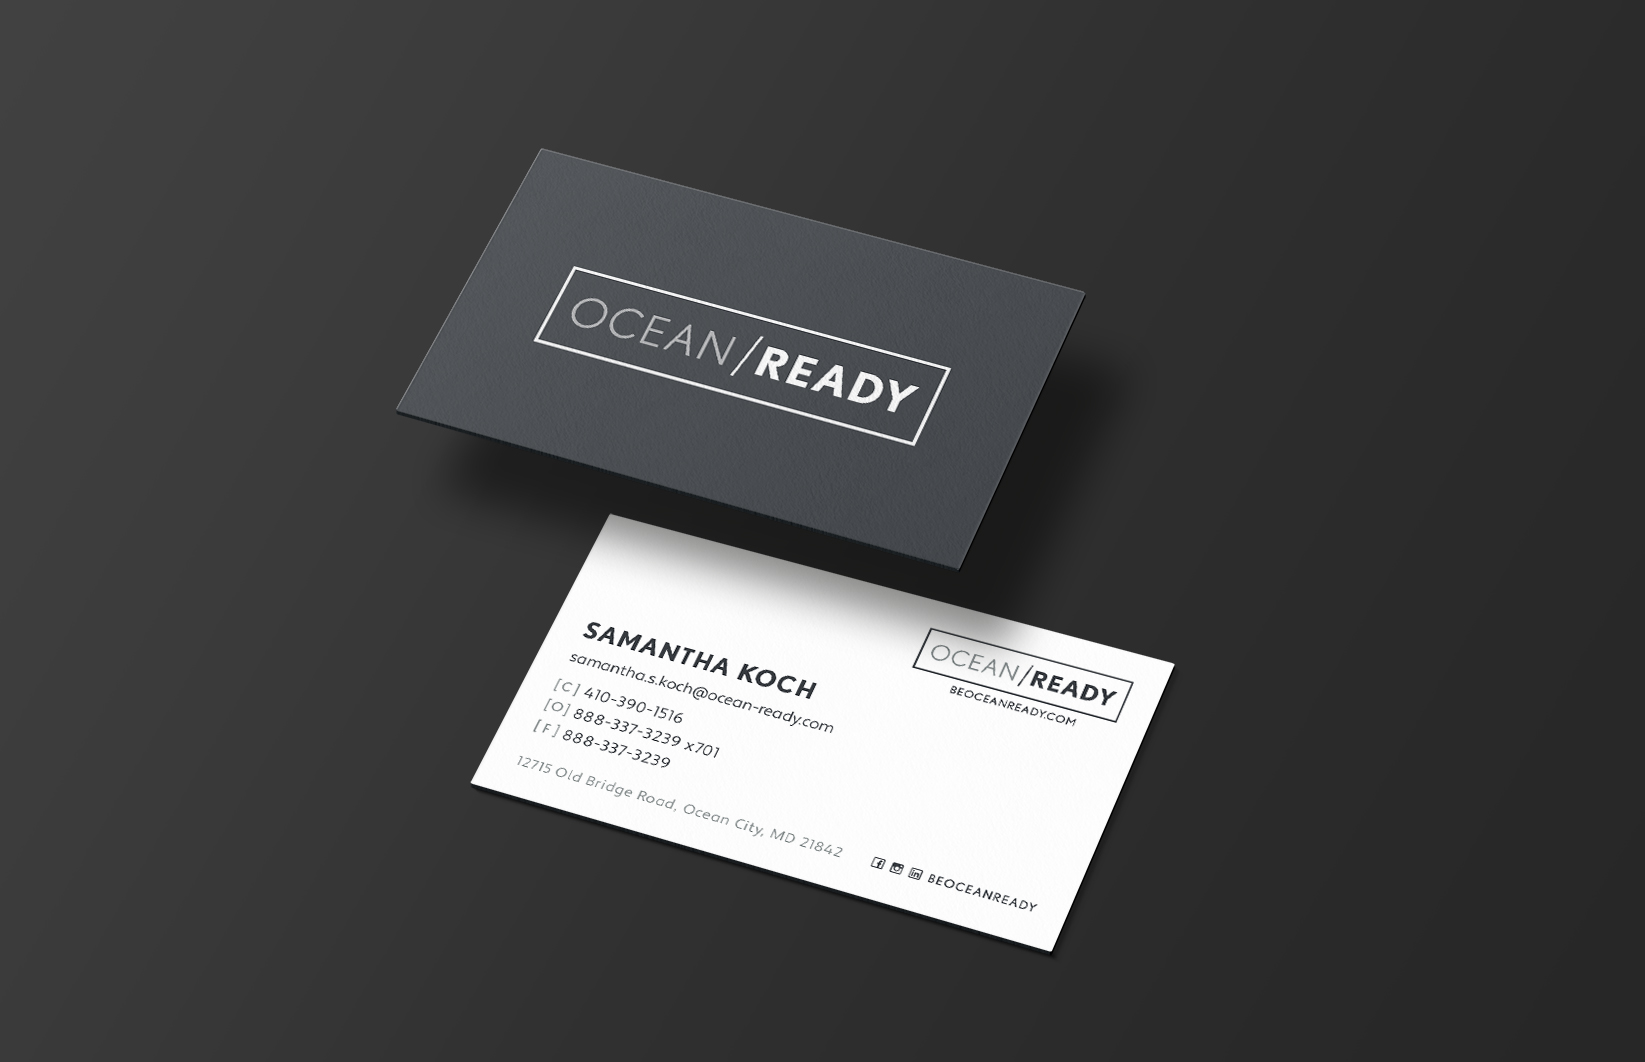 mockup of front and back design of ocean ready business card with solid grey background